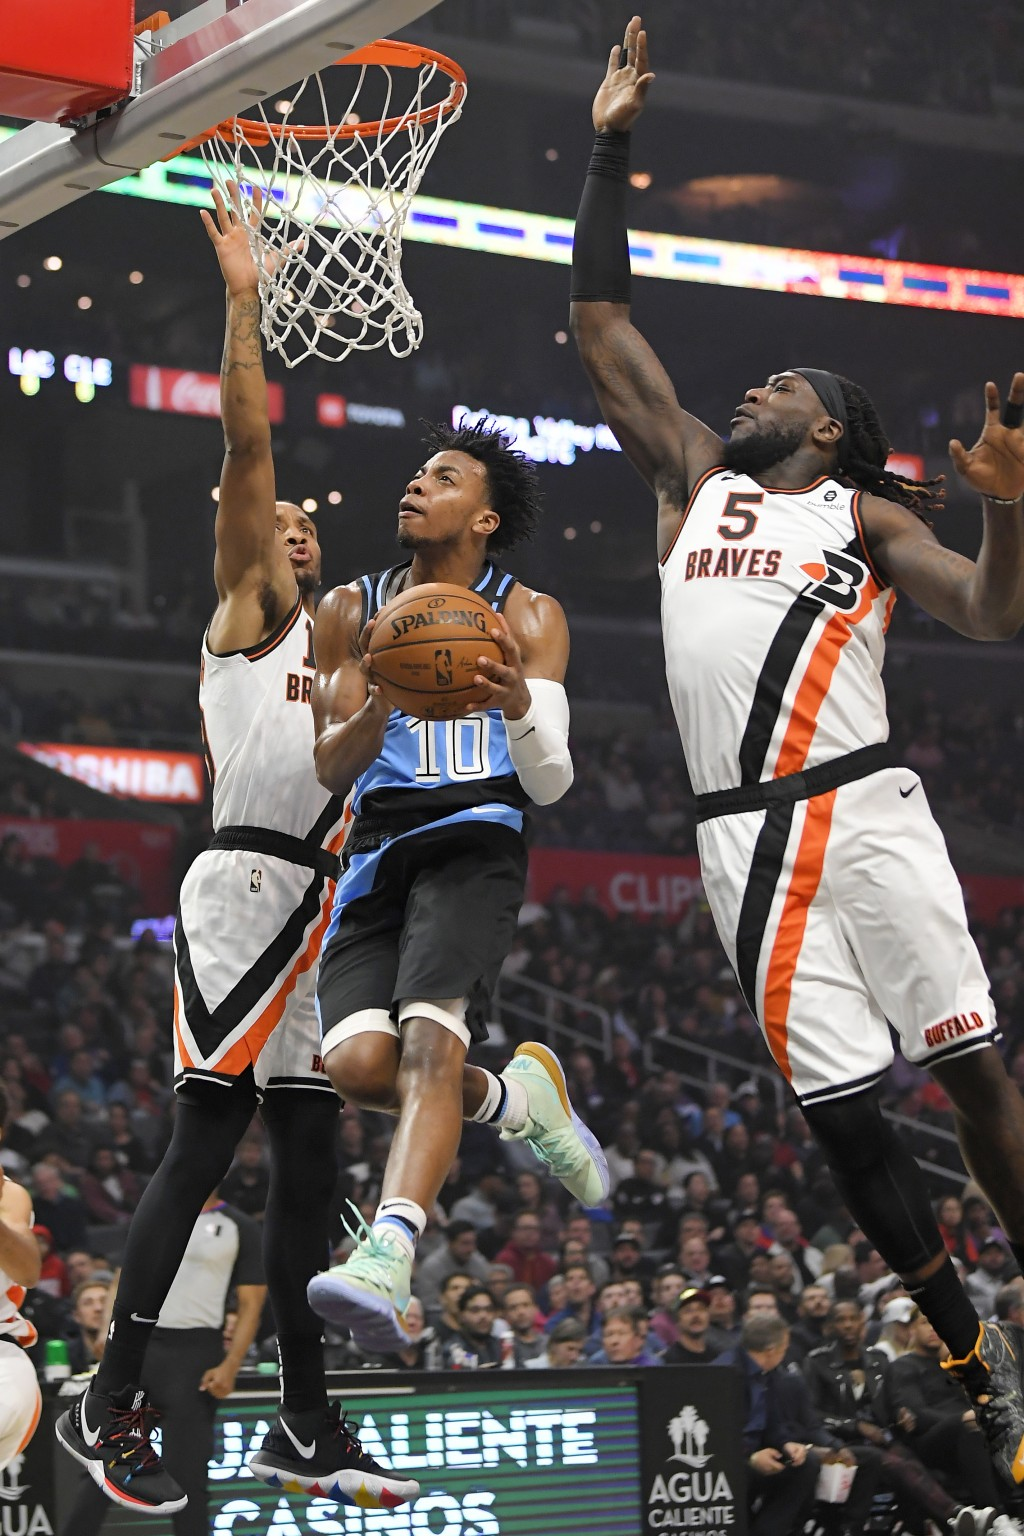 Cleveland Cavaliers guard Darius Garland, center, goes up for a shot as Los Angeles Clippers guard Rodney McGruder, left, and forward Montrezl Harrell...